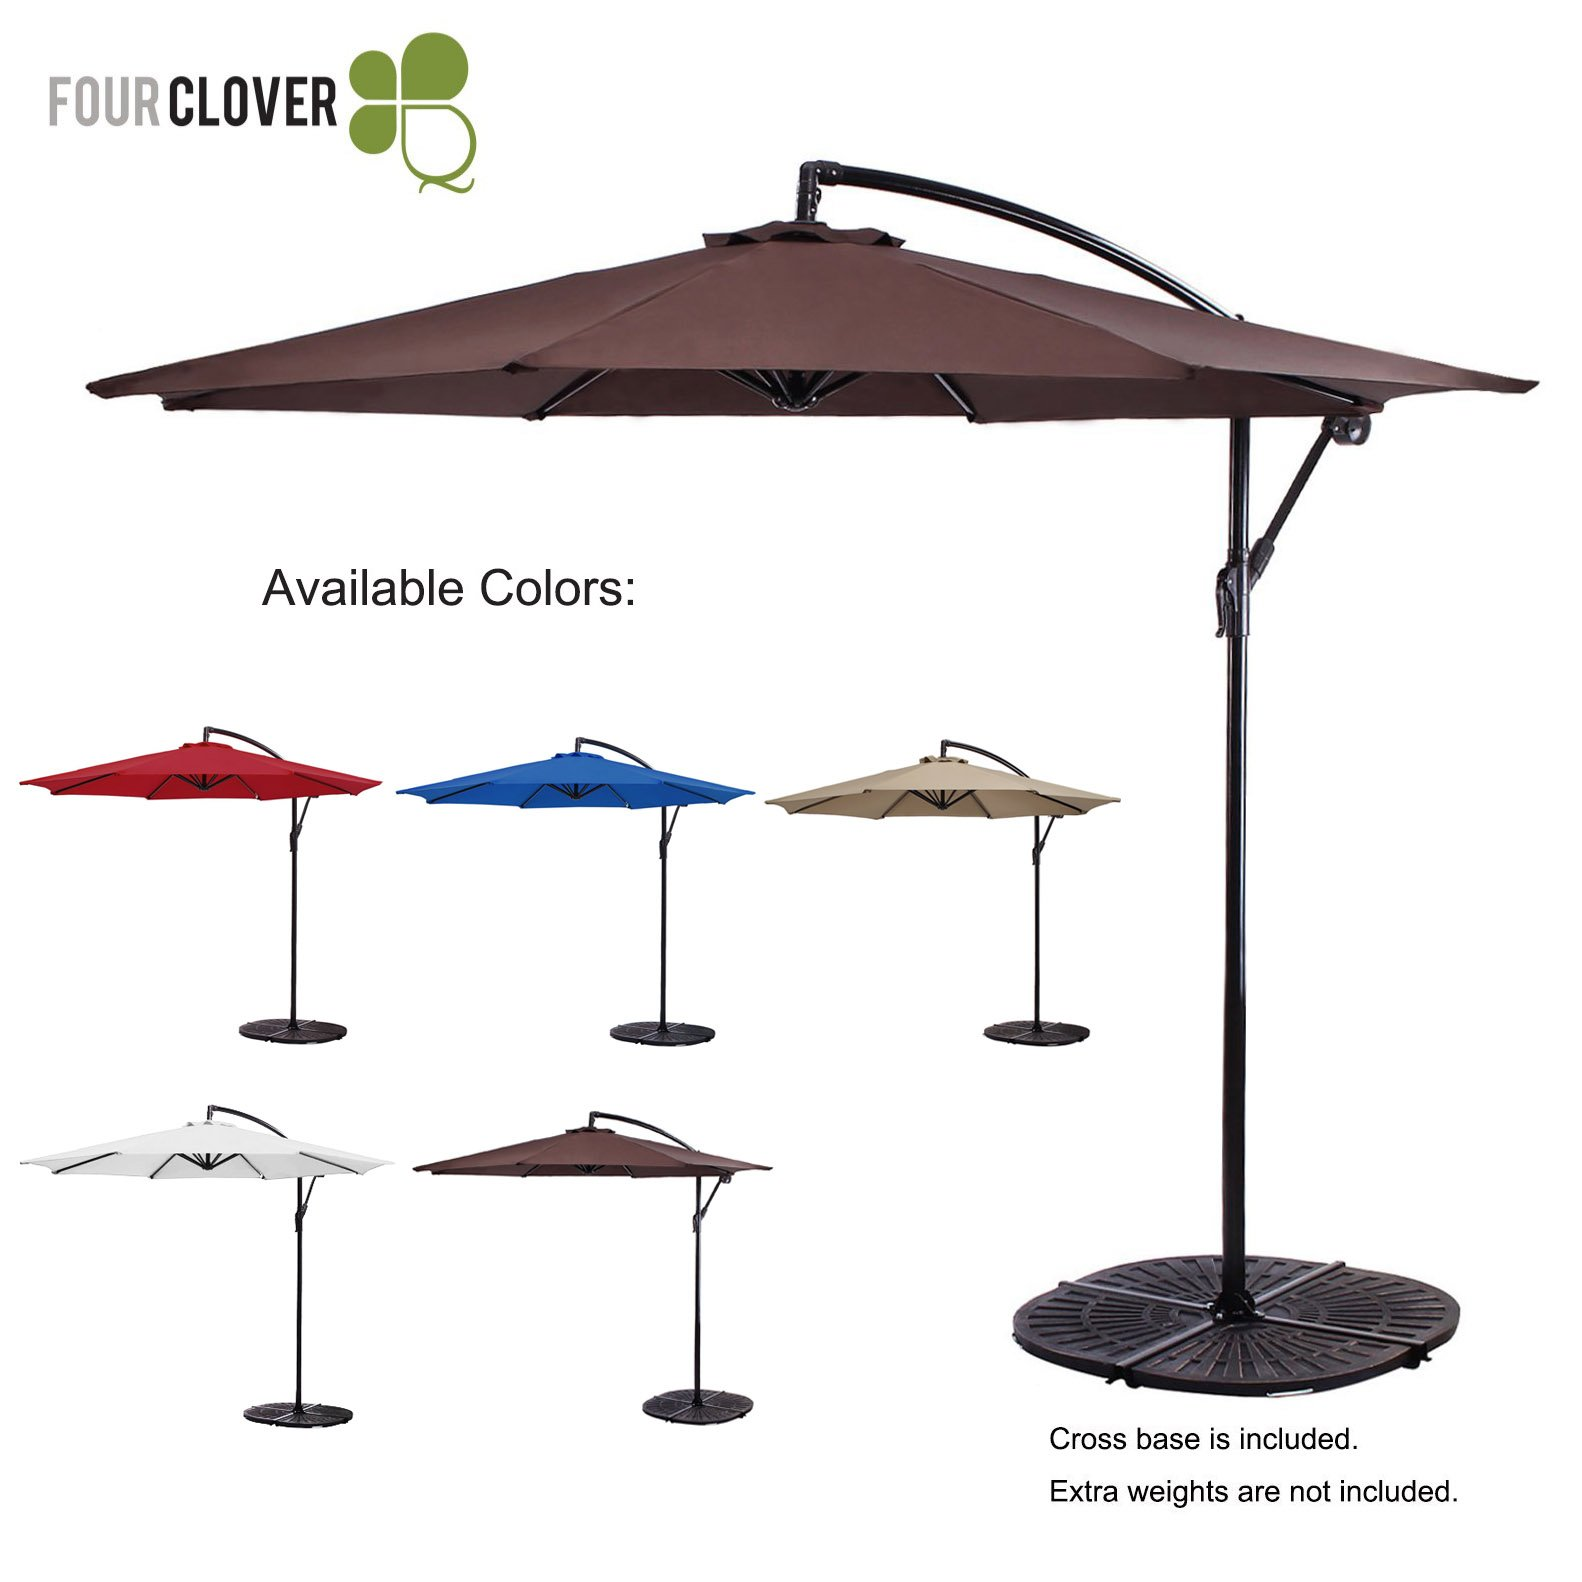 FOUR CLOVER 10 Ft Patio Umbrella Offset Hanging Umbrella Outdoor Market Umbrella Garden Umbrella, 250g/sqm Polyester, with Cross Base and Crank (Brown)